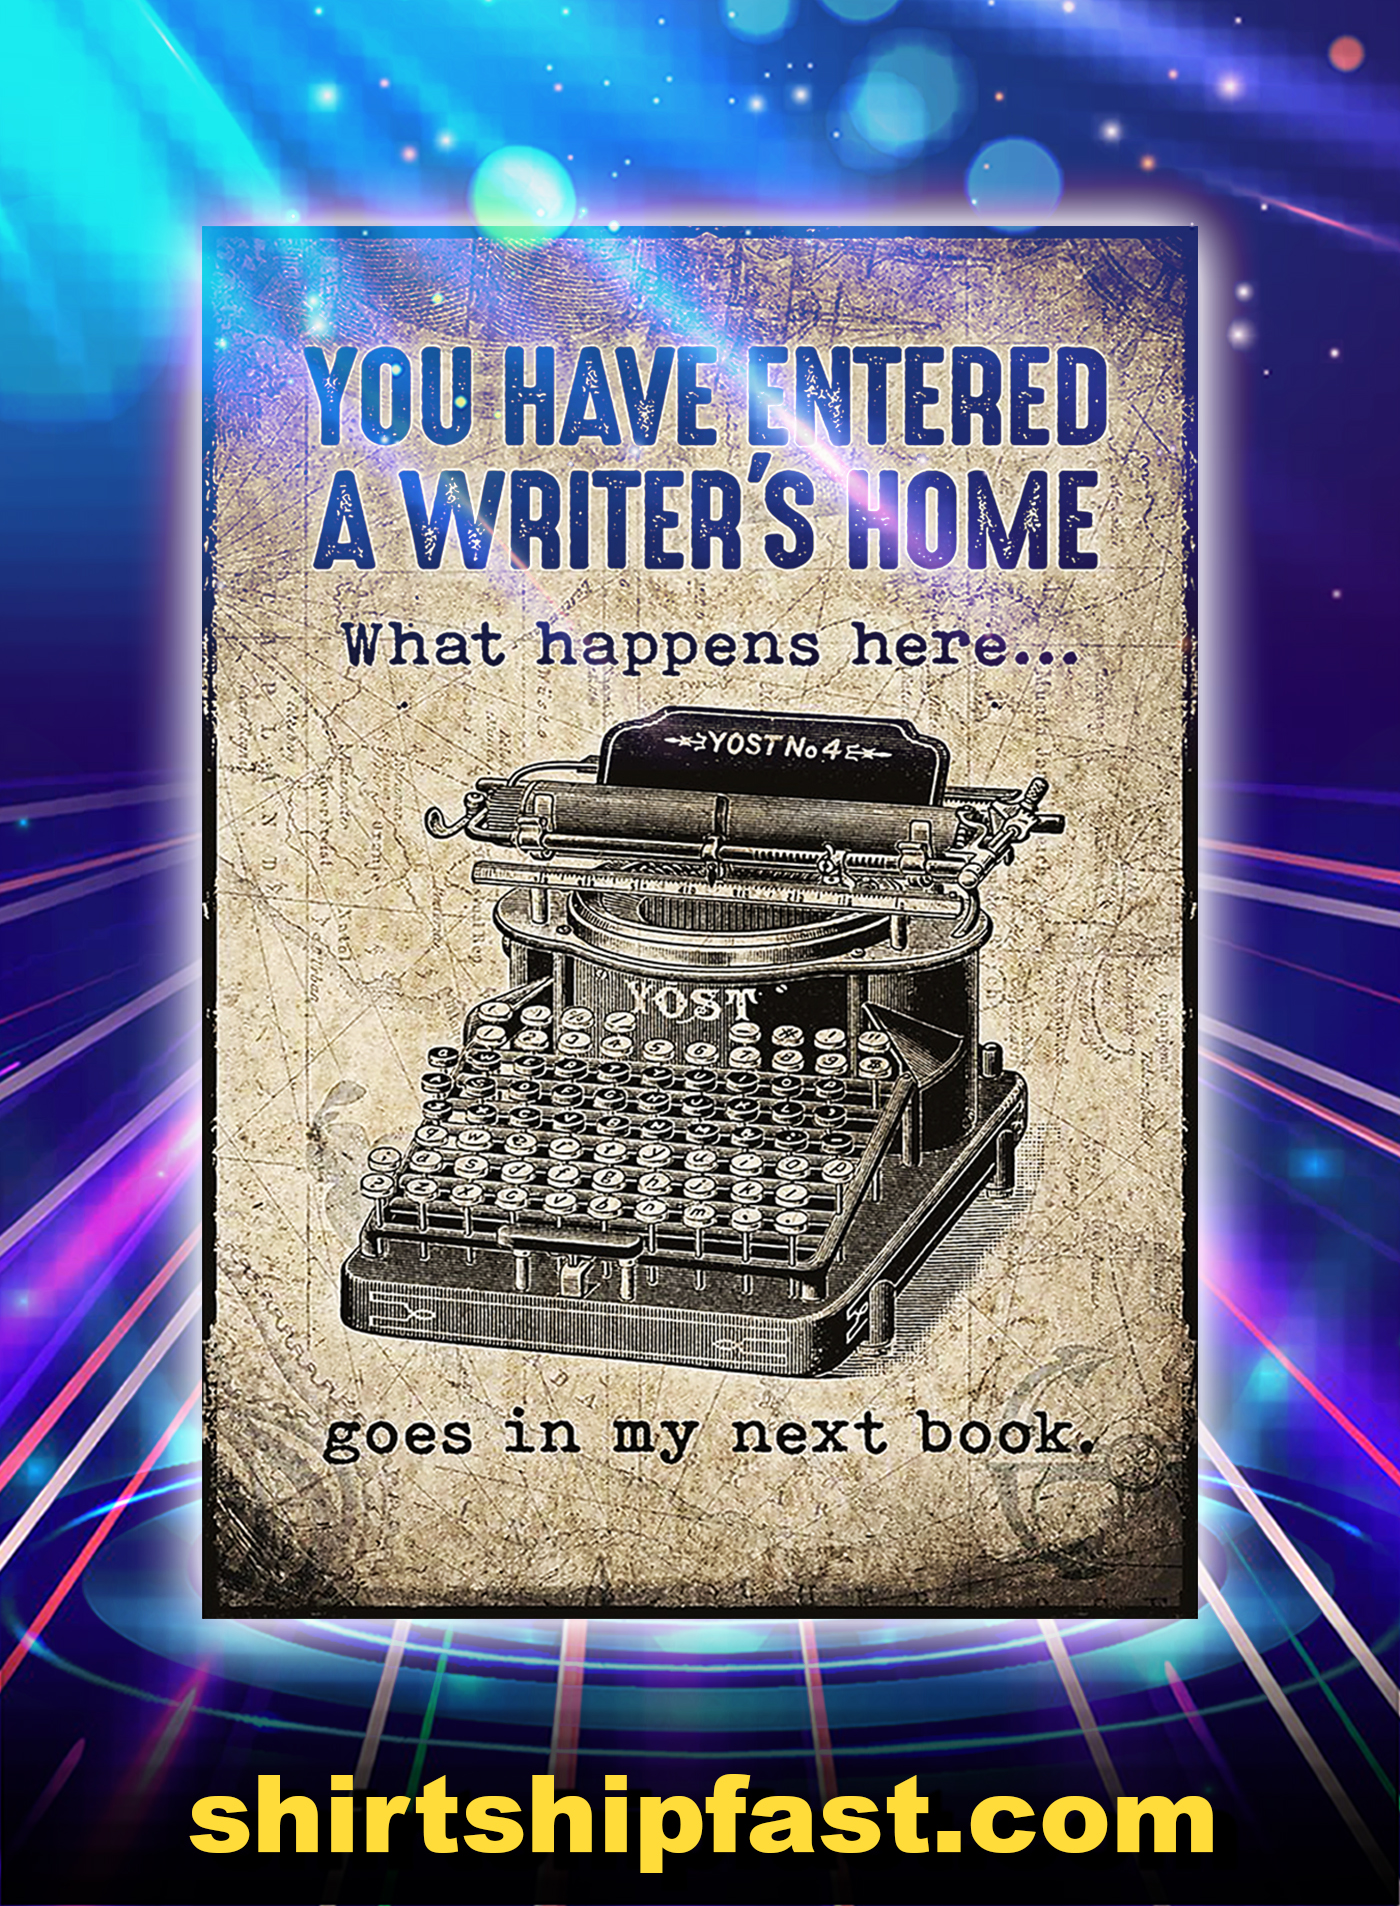 You have entered a writer's home what happens here goes in my next book poster - A1